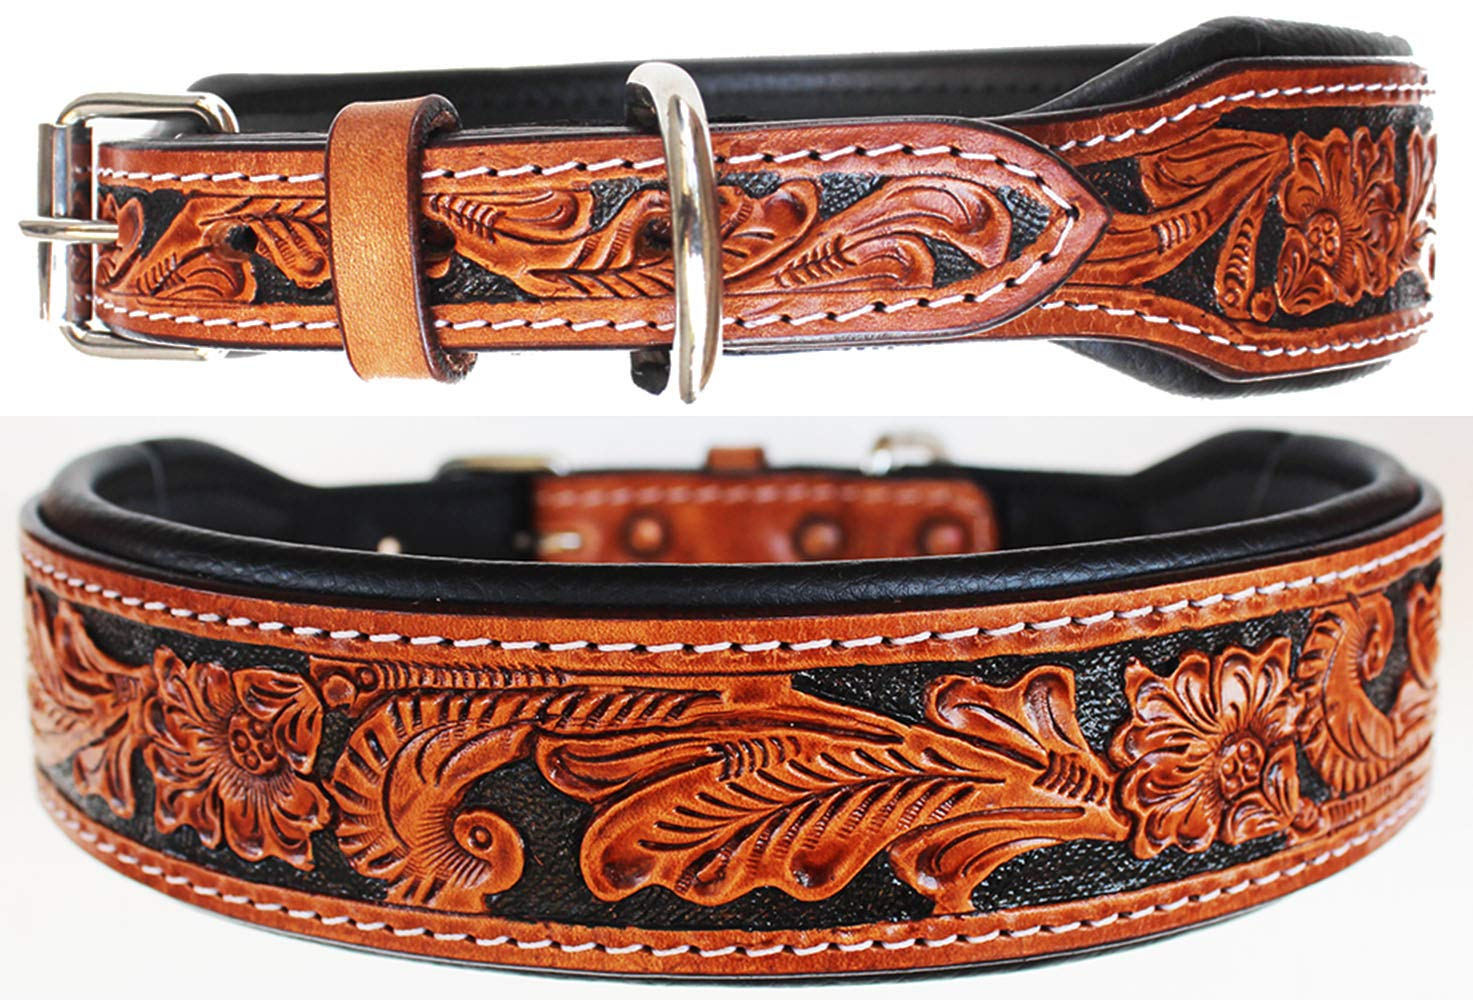 ProRider Small 13''- 17'' Puppy Dog Collar Tooled Carved 100% Cow Leather Amish 6022A by ProRider